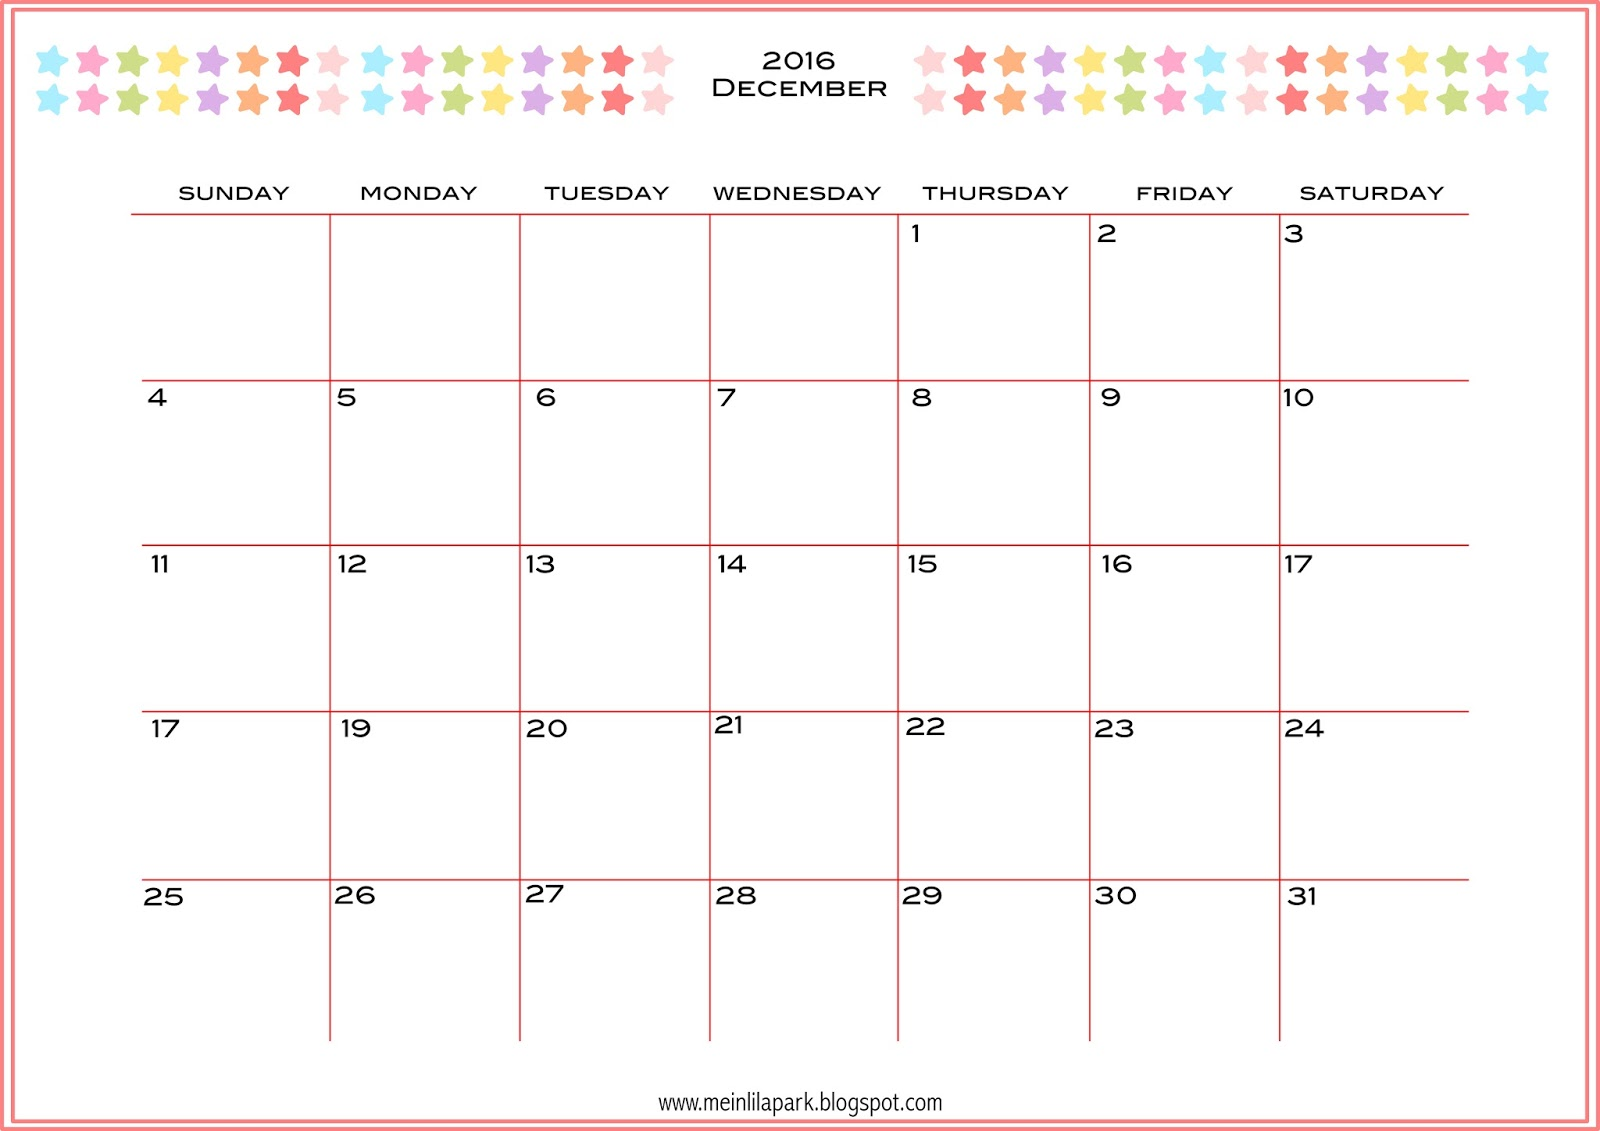 Free printable 2016 monthly planner calendar - part 2 ...